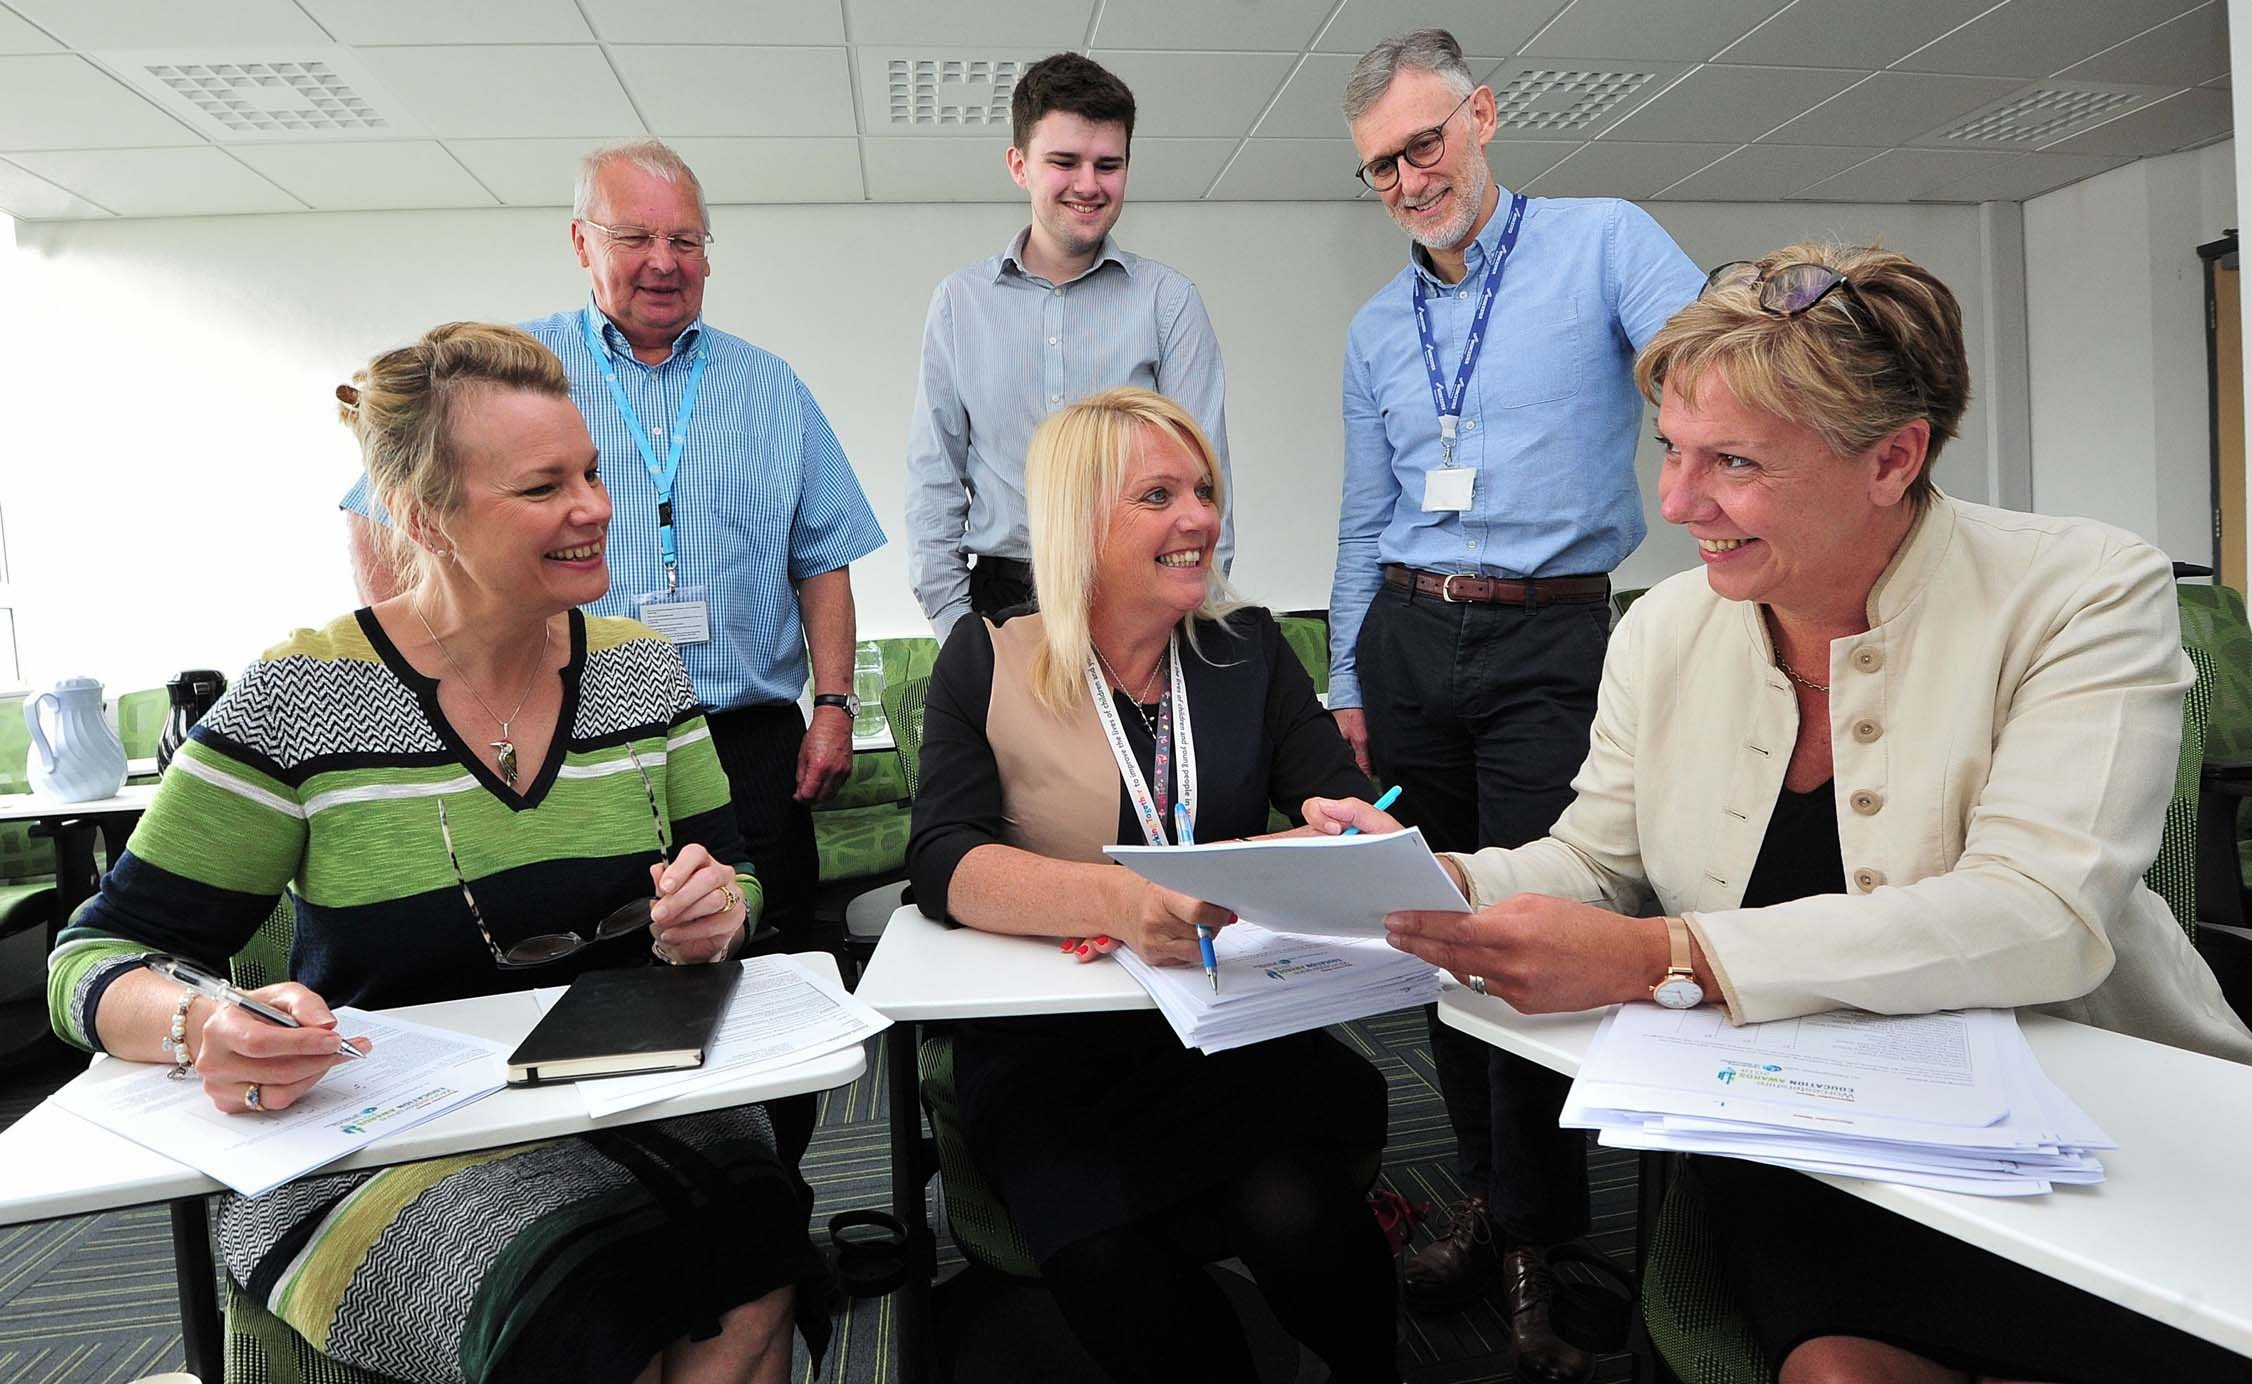 CHOICES: The Judging Panel for the Worcester News Education Awards 2018, pictured at Worcster University St Johns Campus. (Front from the left) Sue Griffiths, Denise Hannibal, Liz Holt. (Back from the left) David Flint, Jack Barnett, Carl Arntzen. Pic Jon